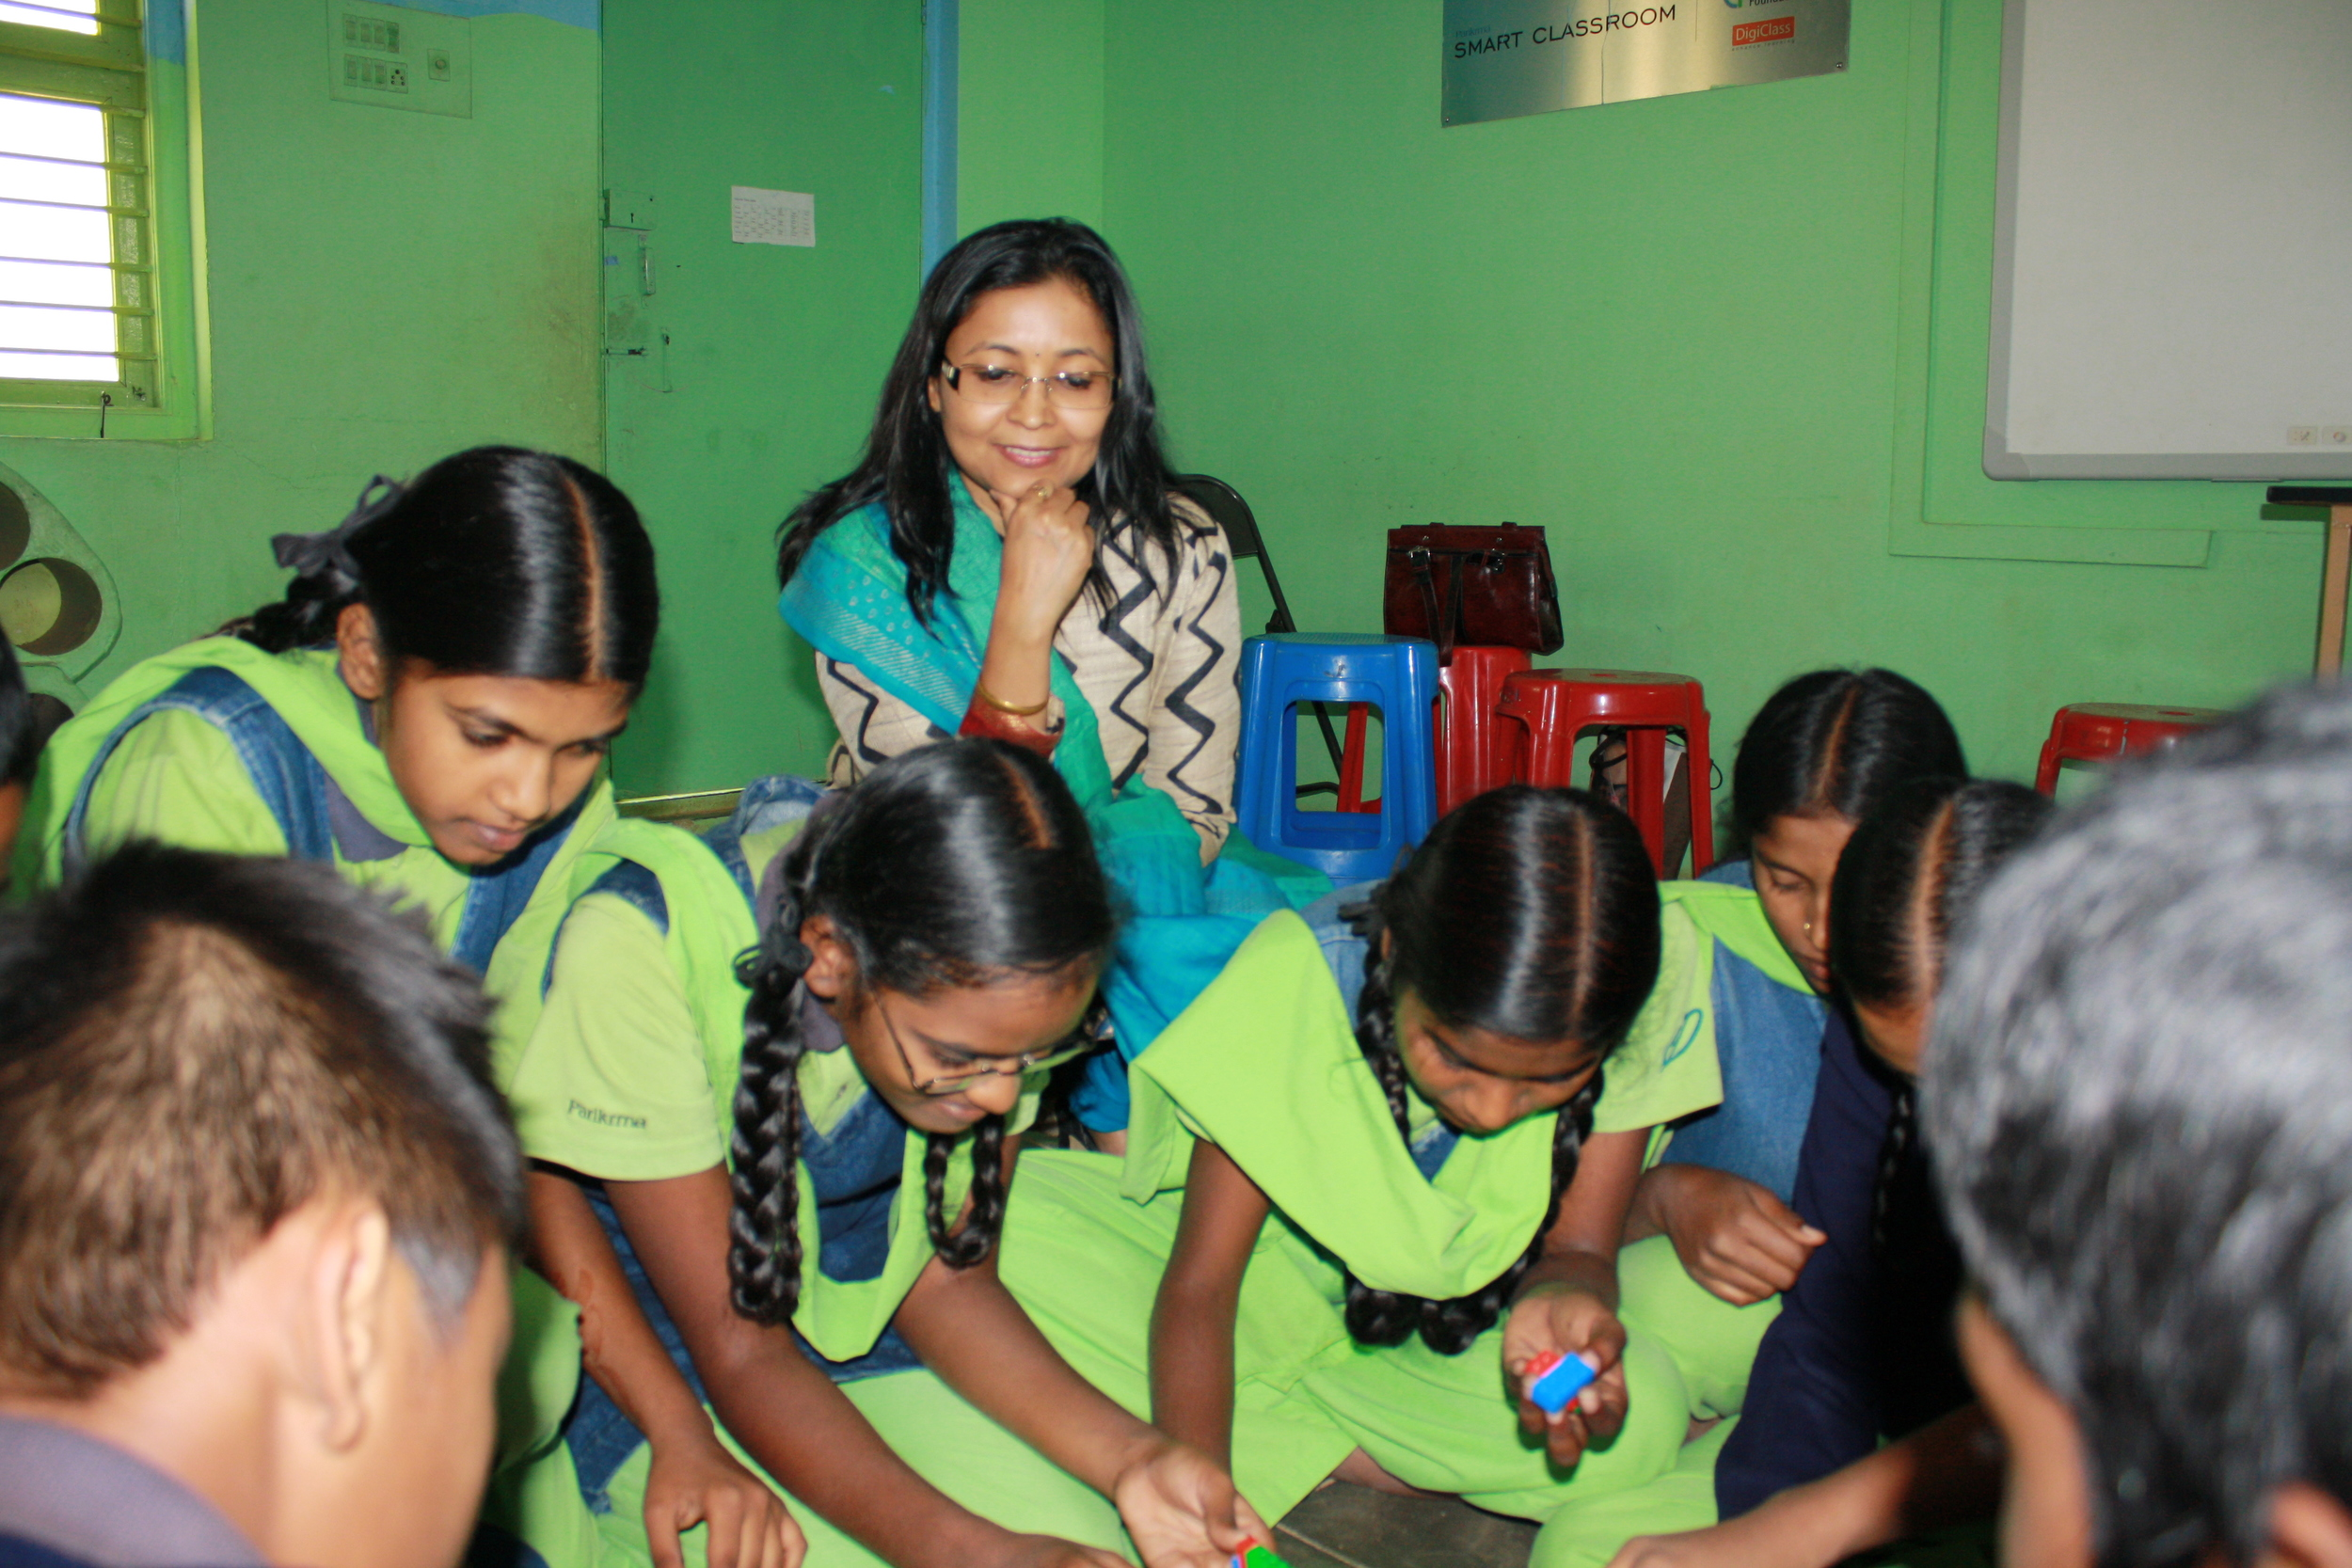 Chandana watches over the girls as they do their experiment